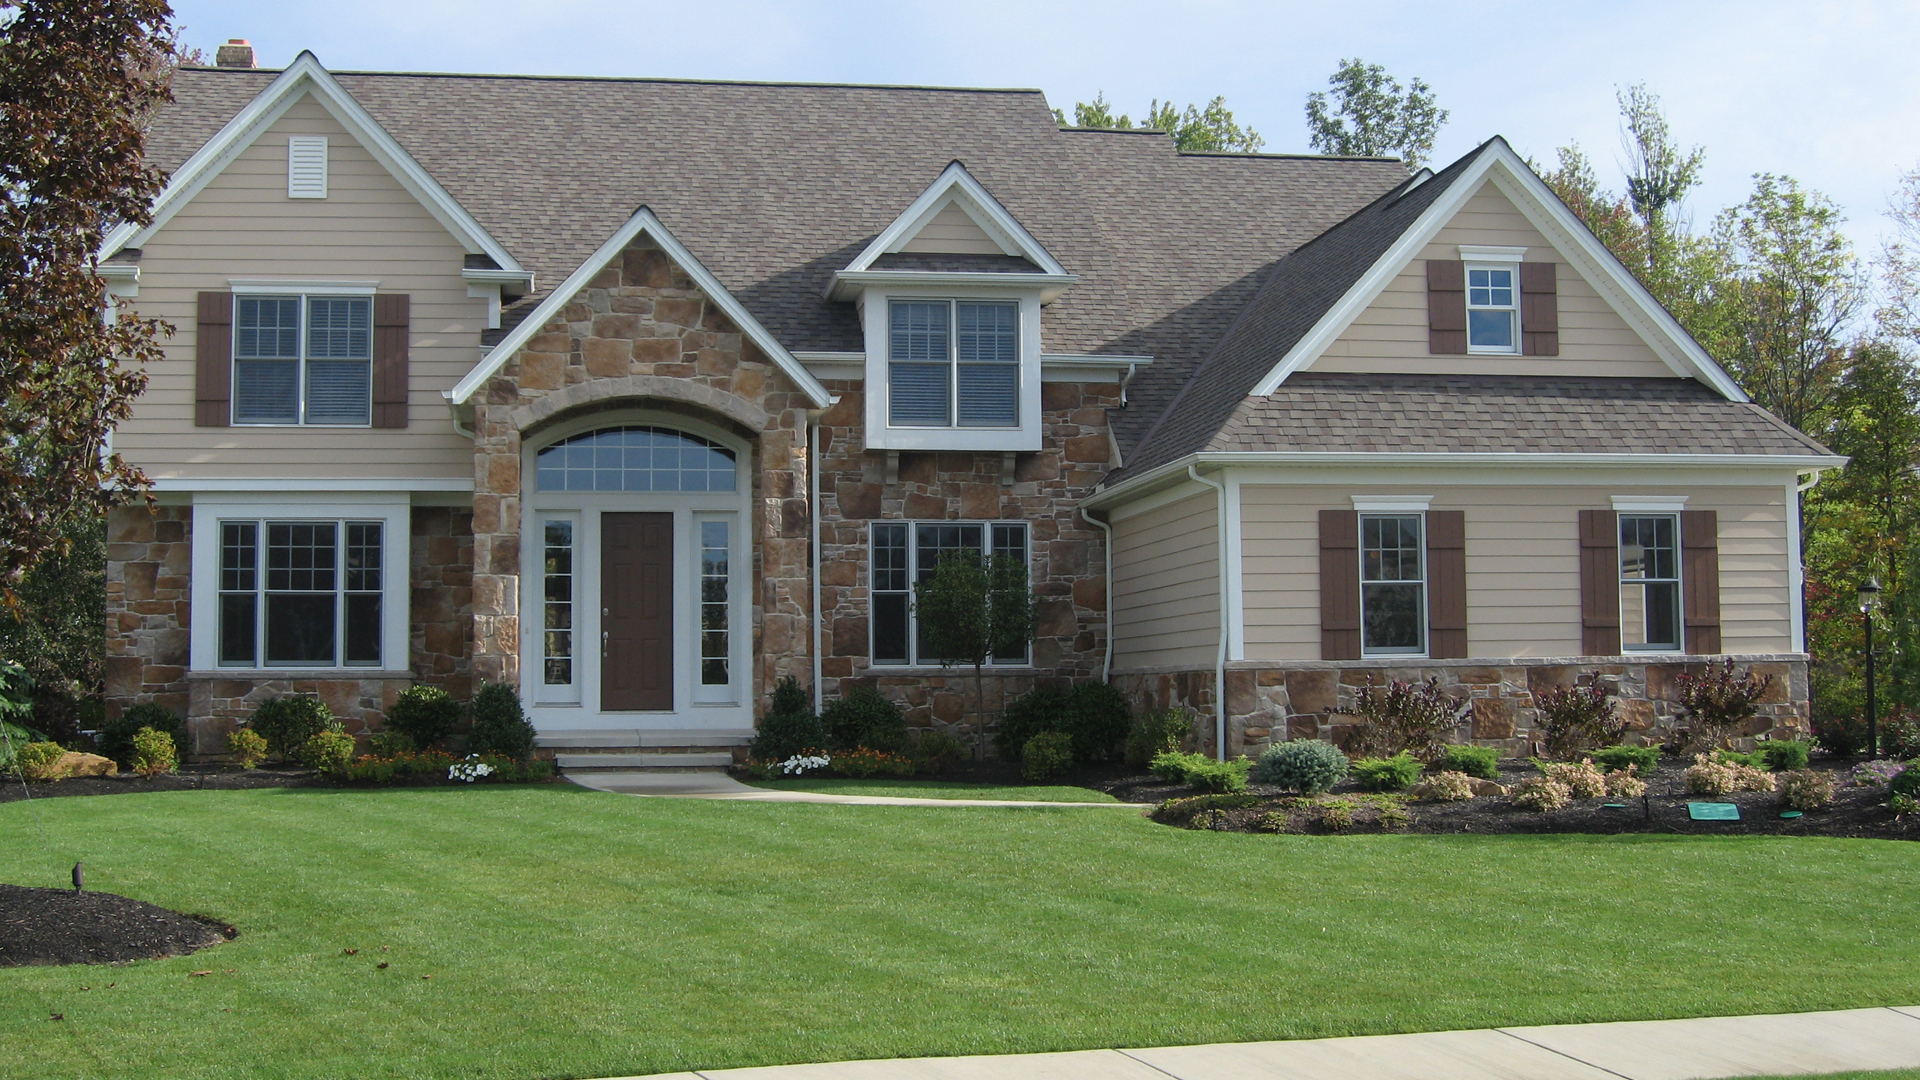 SIMCON HOMES HAS BEEN A QUALITY HOME BUILDER IN CLEVELAND FOR OVER 40 YEARS.